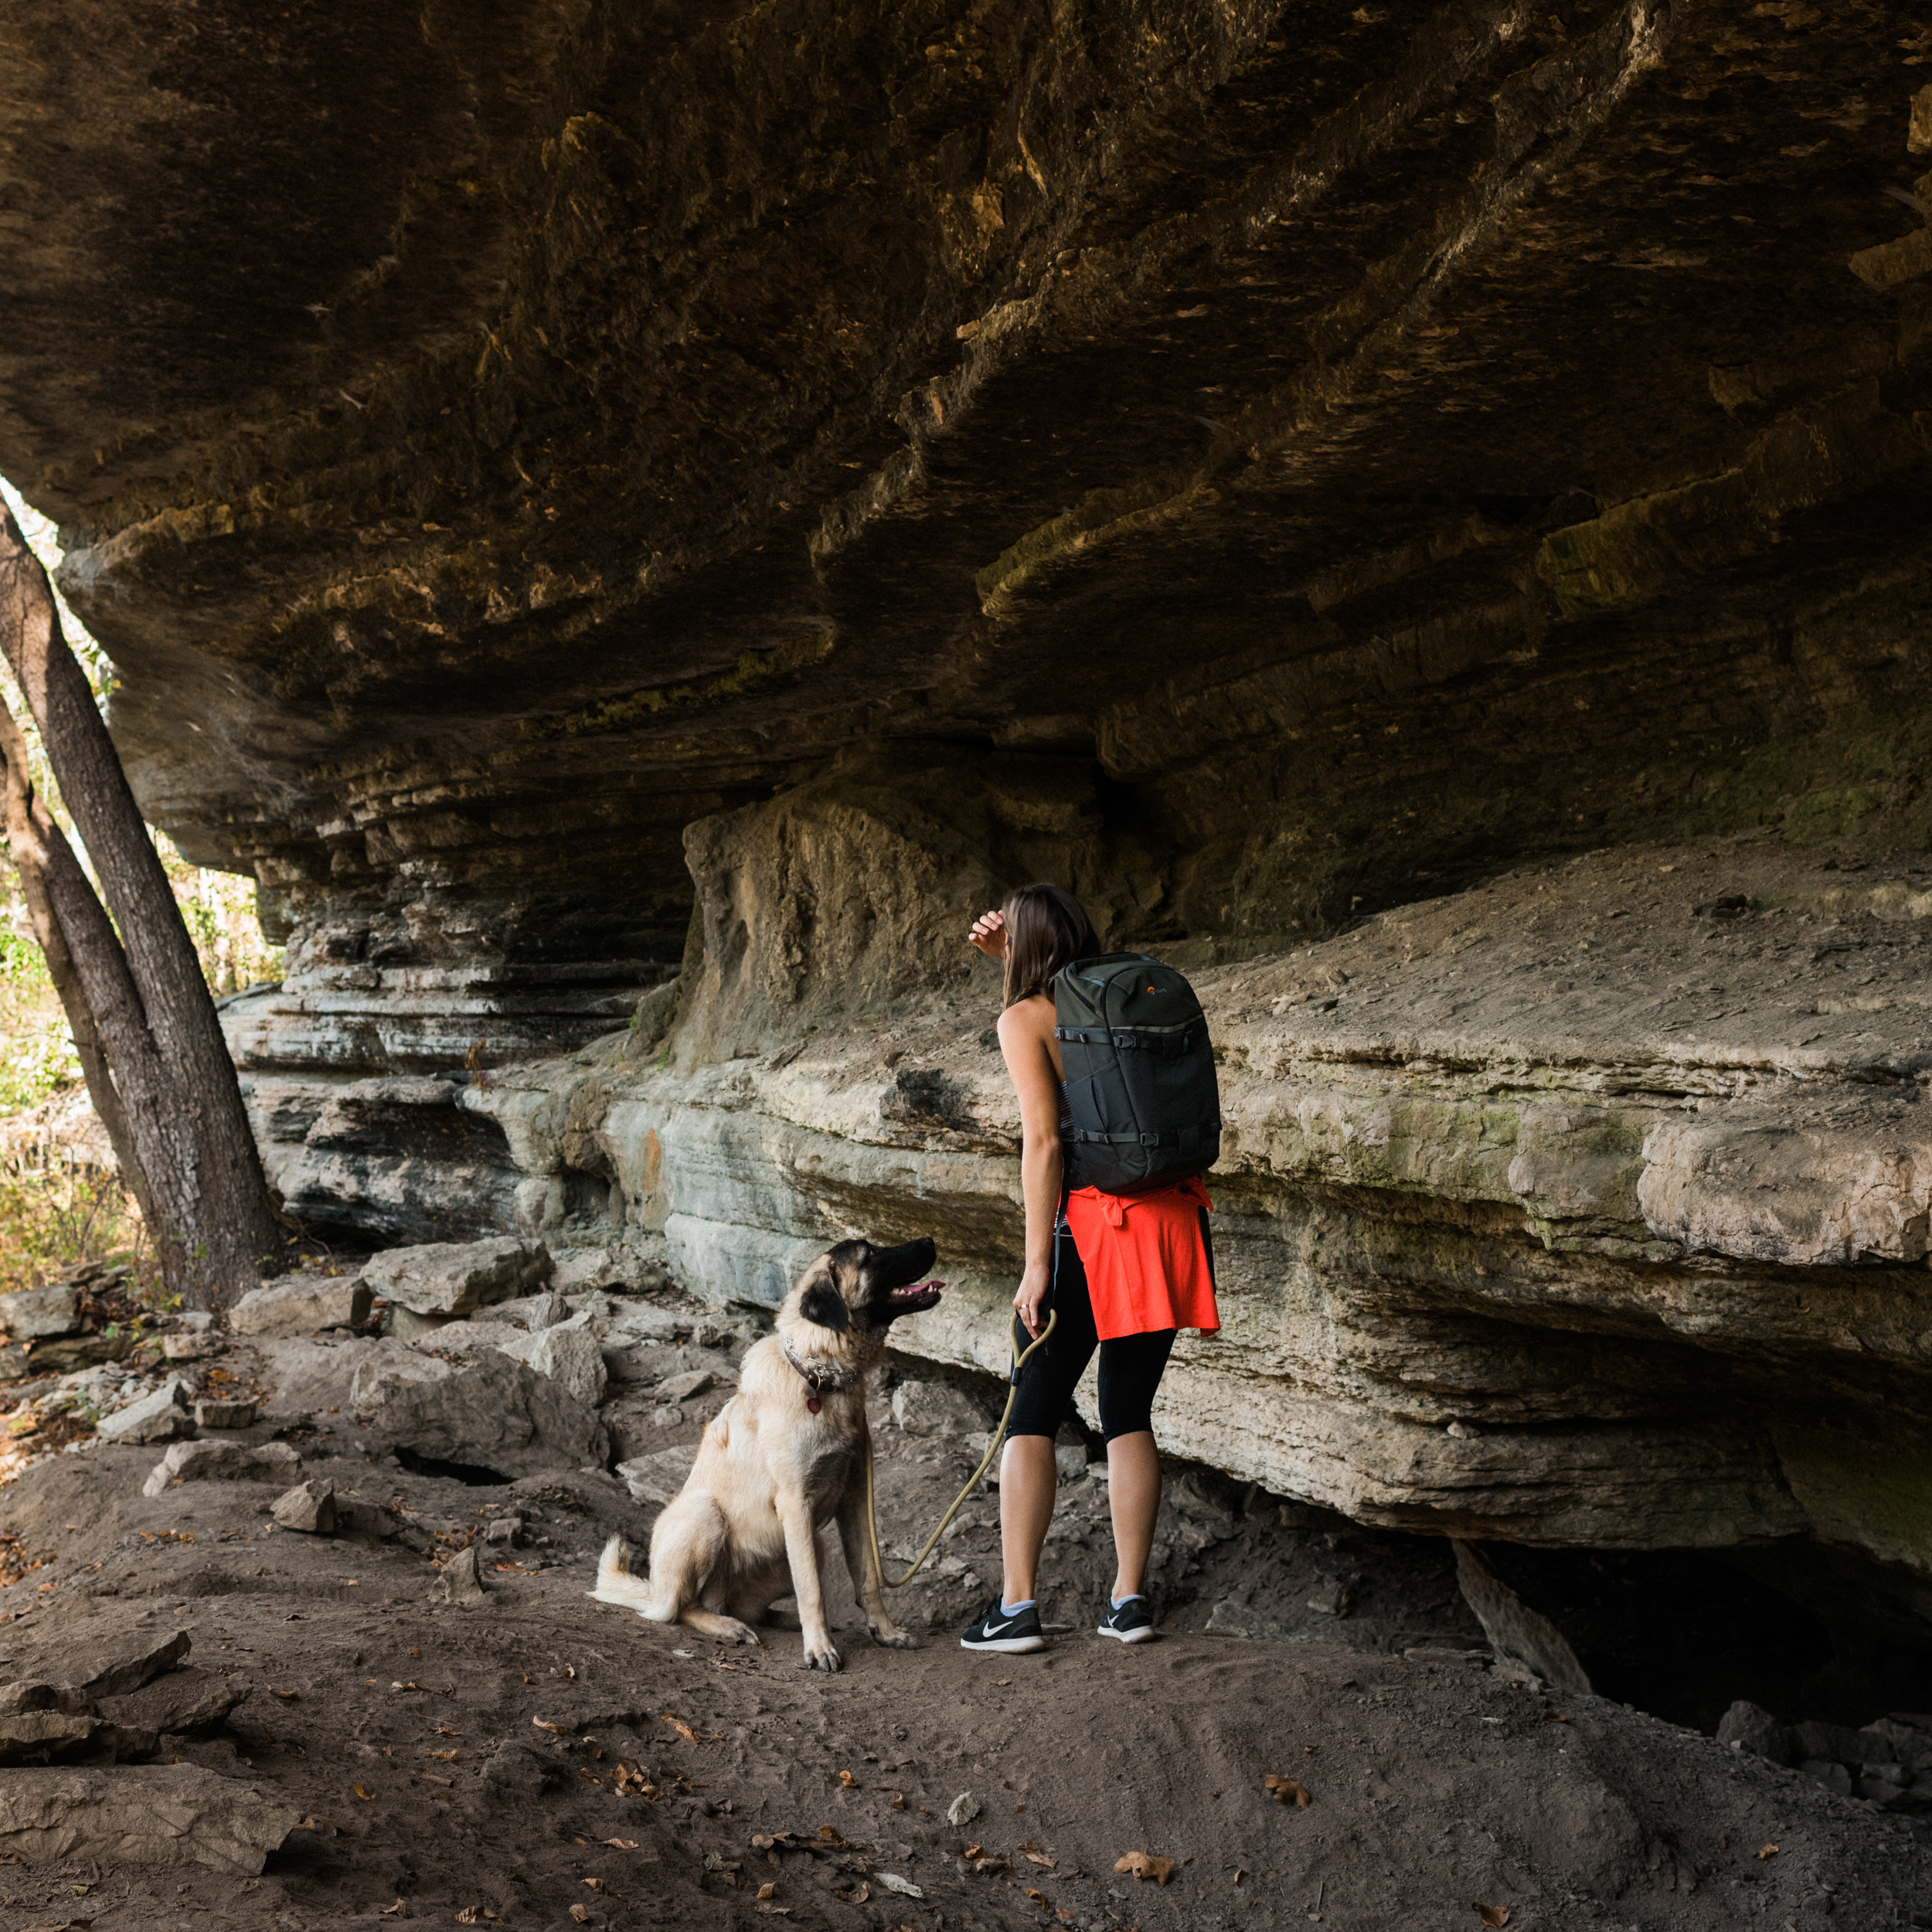 TaraShupe_Photography_SamsThrone_Climbing_Arkansas_CampingWithDogs_007.jpg